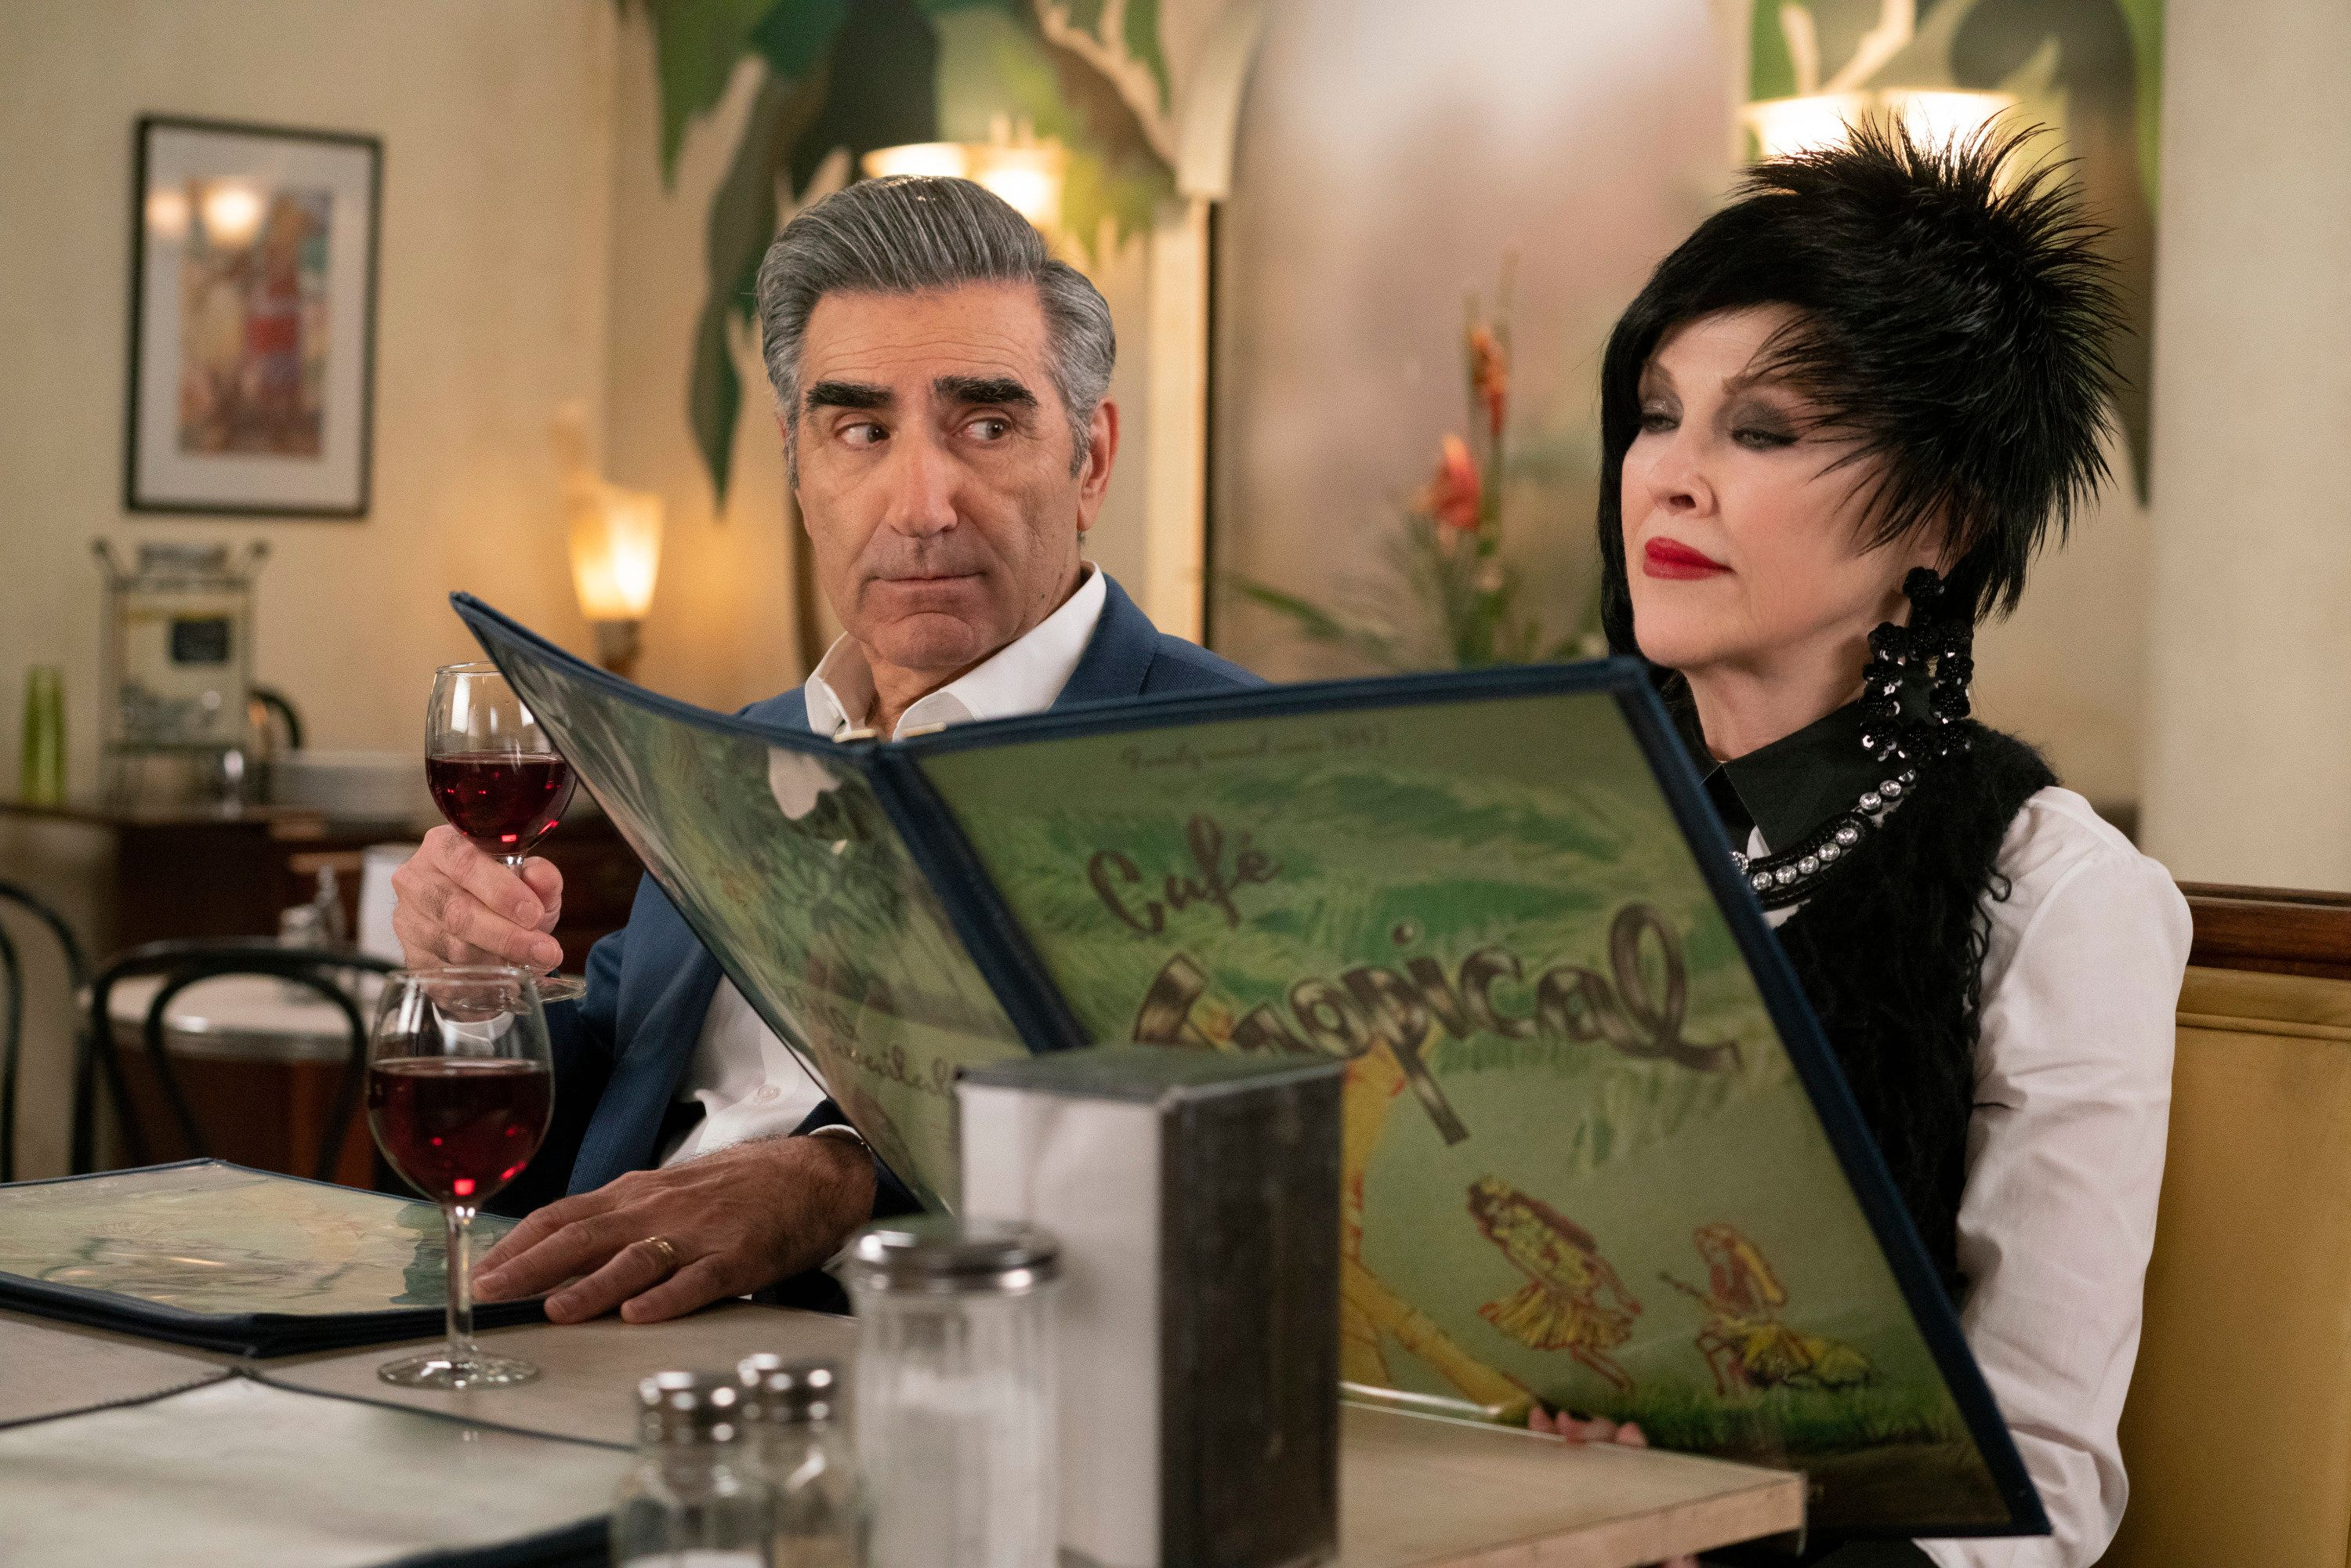 Johnny looks on as Moira peruses the menu at Cafe Tropical